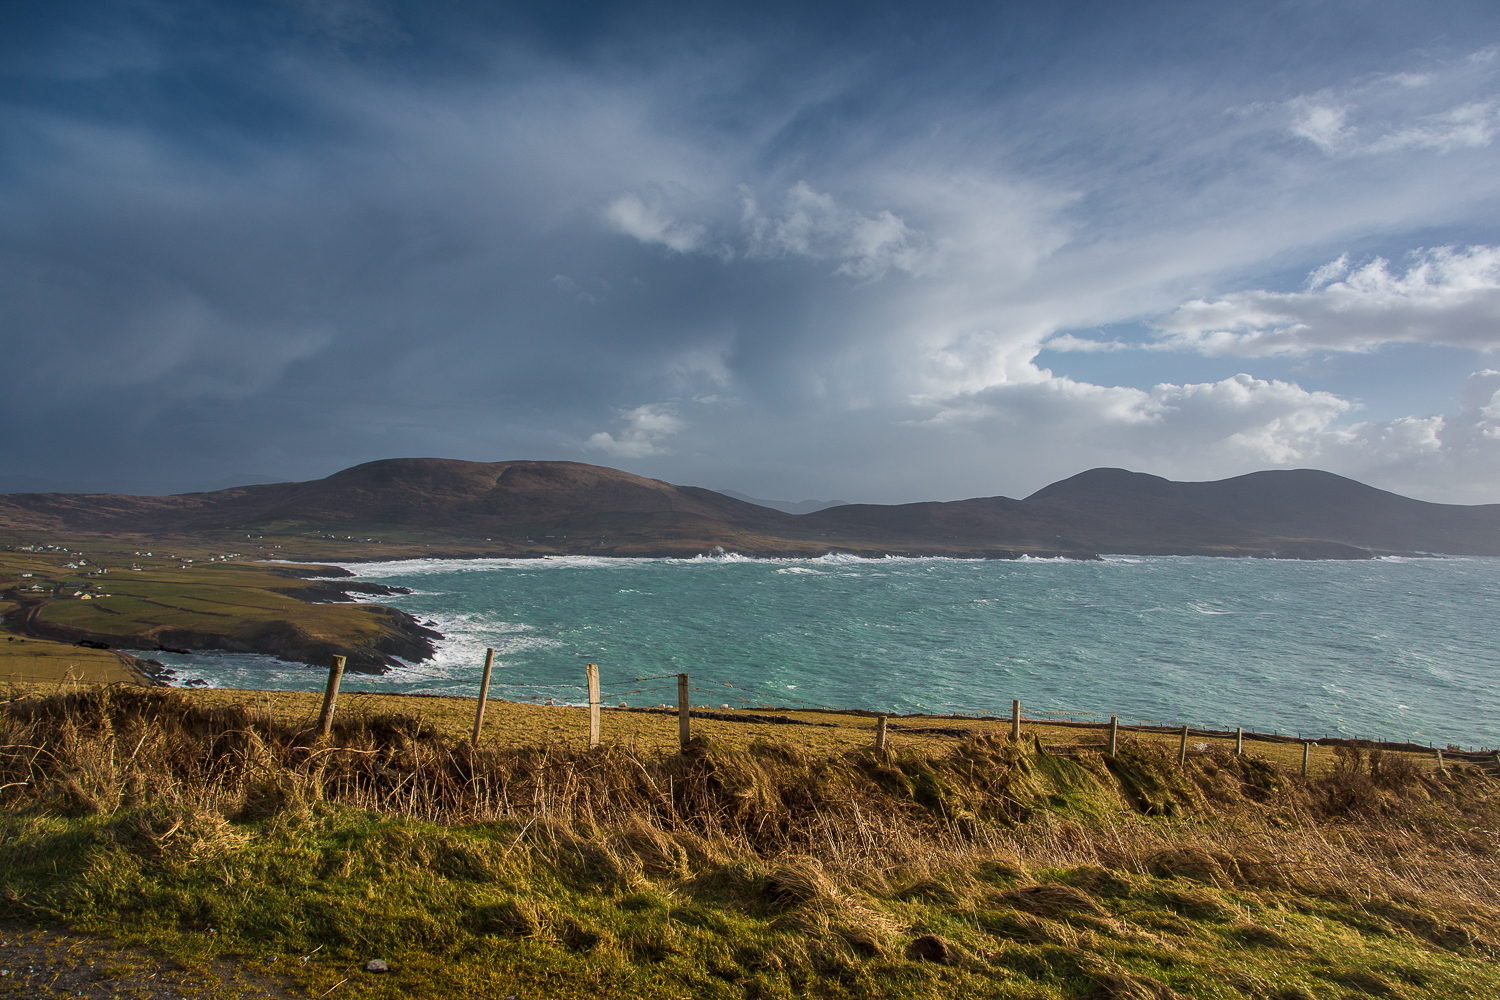 Finnian's Bay (back road from Ballinskelligs to Portmagee). ISO 200, f/8, 1/160 second, Canon MKIII, 24mm - 105mm Canon L @24mm with CPL and graduated ND4 filters